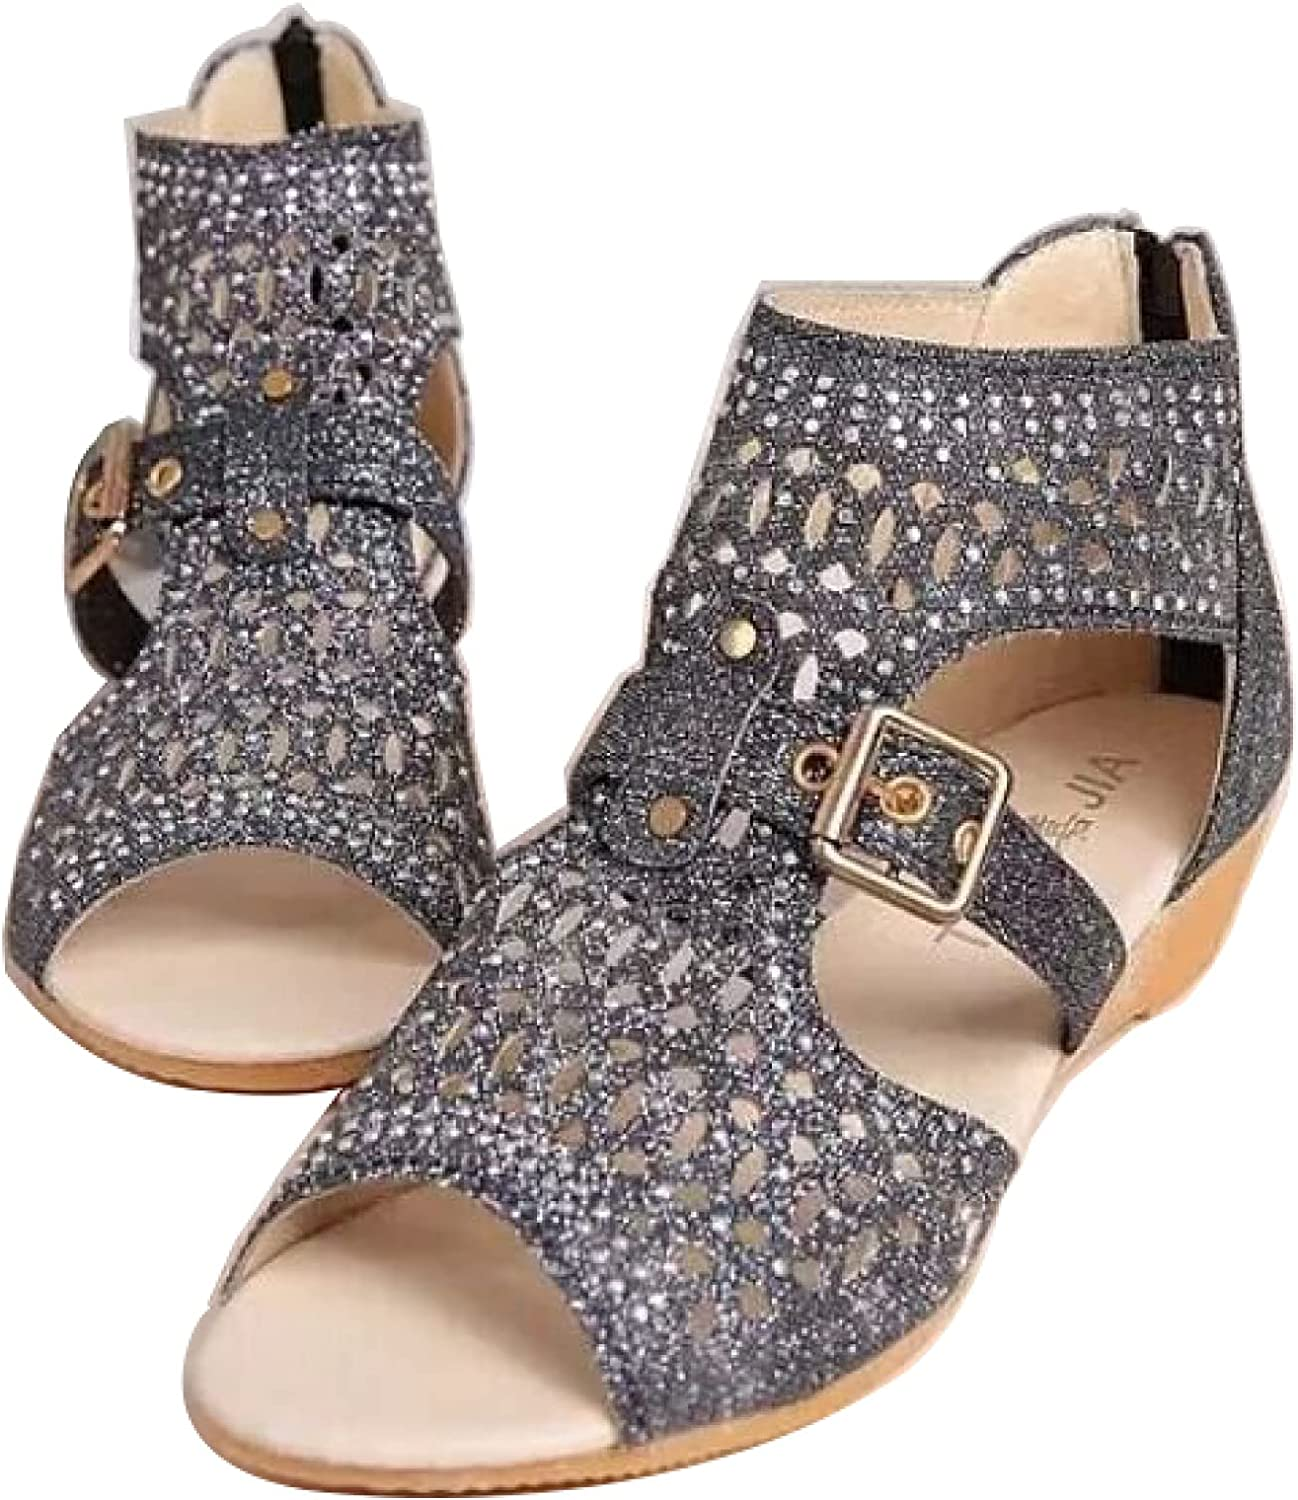 Gladiator Sandals for Women's, Summer Casual Hollow Buckle Strappy Vamp Open Toe Rhinestones Outdoor Wedge Shoes